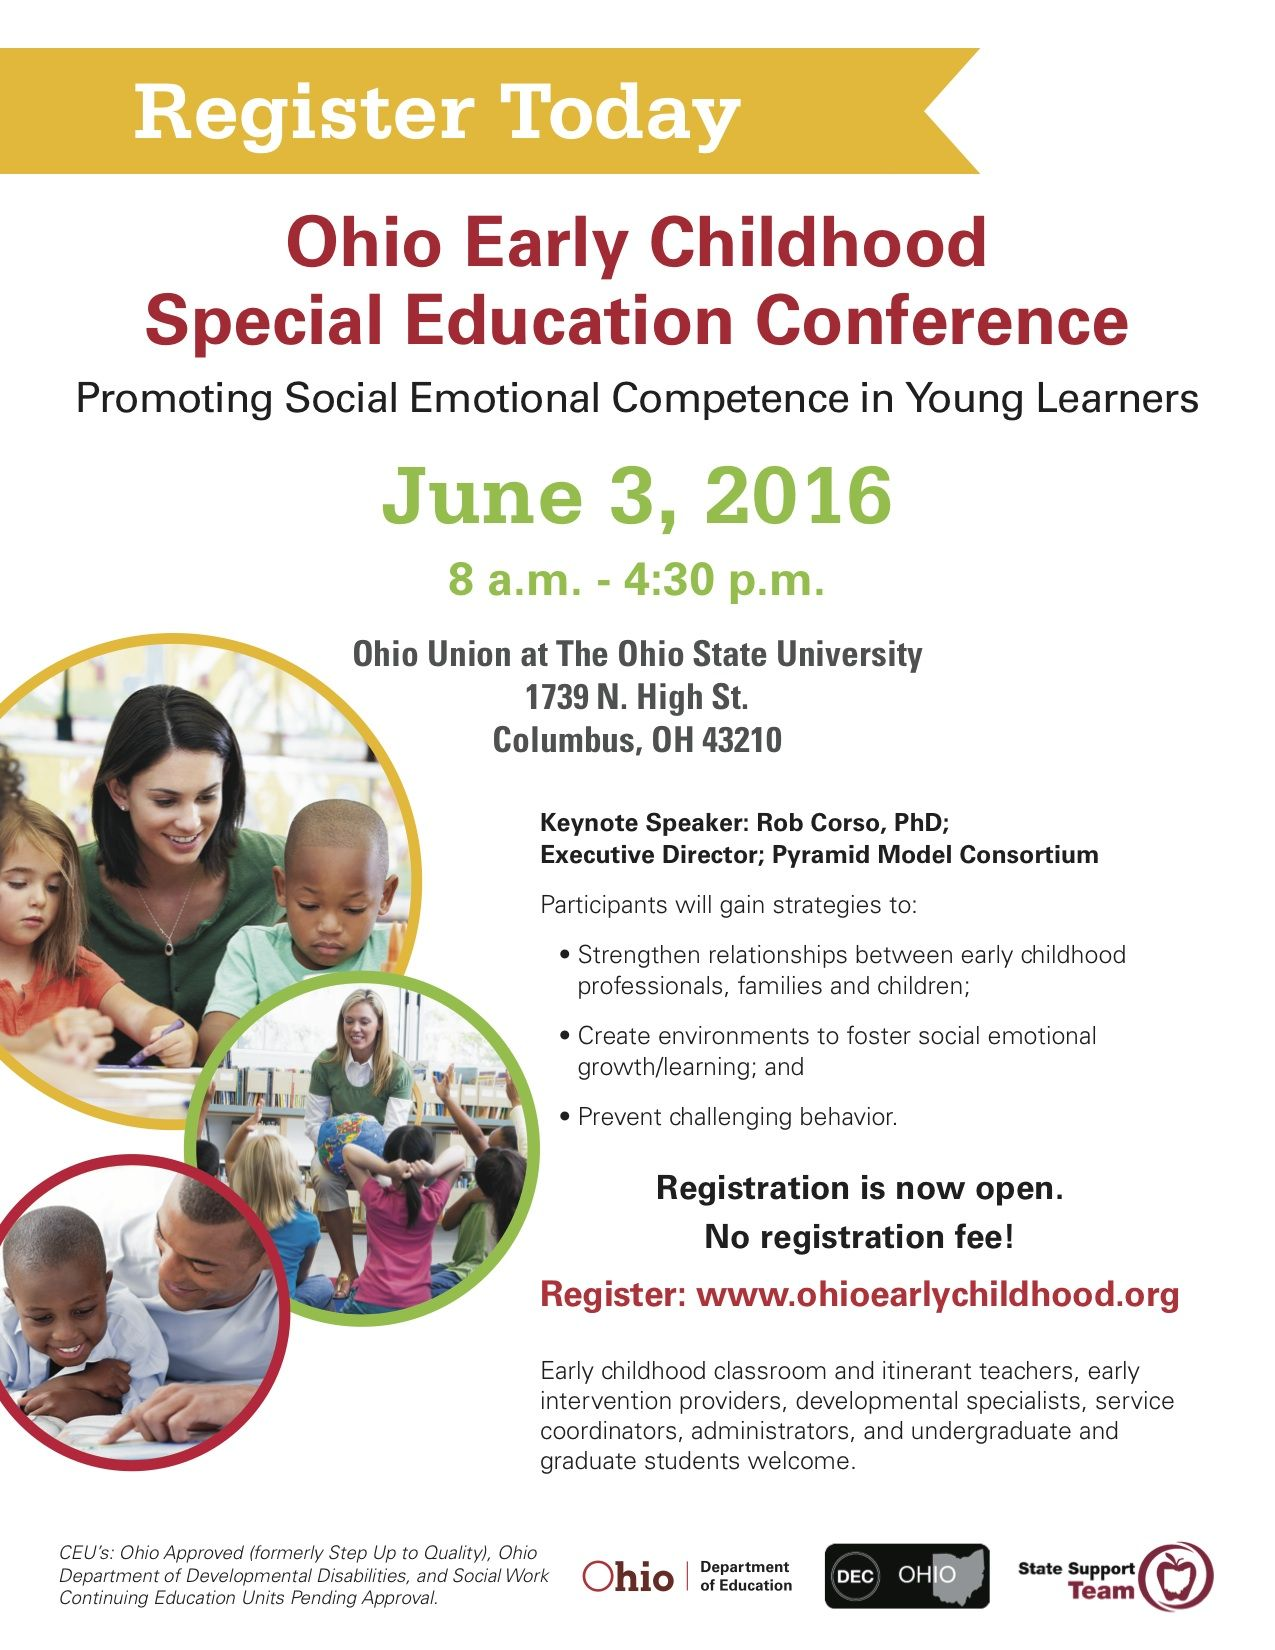 Ohio Early Childhood Special Education Conference